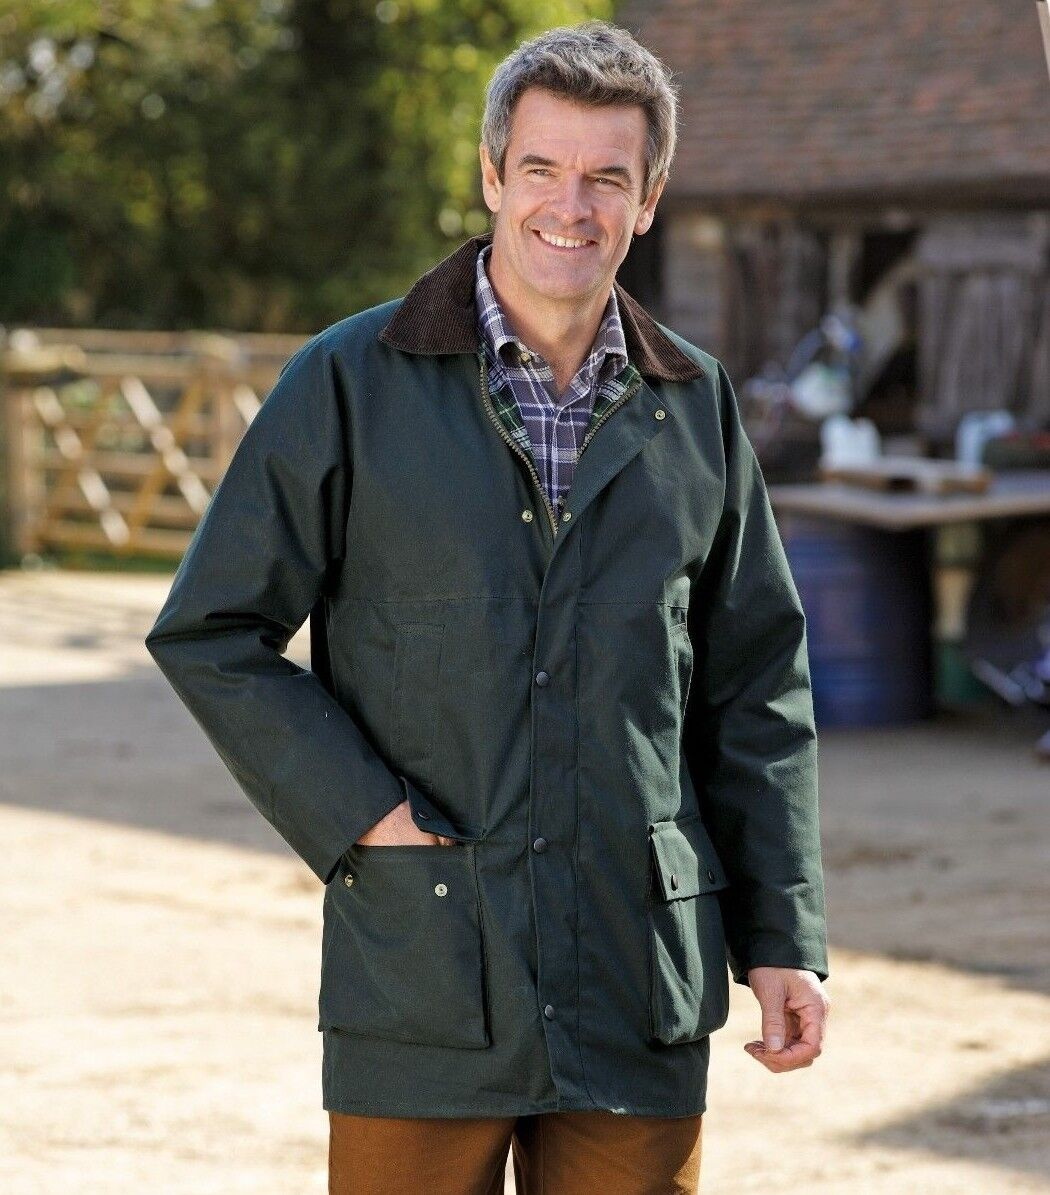 Wax Jacket New Padded Country Walking Made In England Navy Men/'s Ladies Unisex